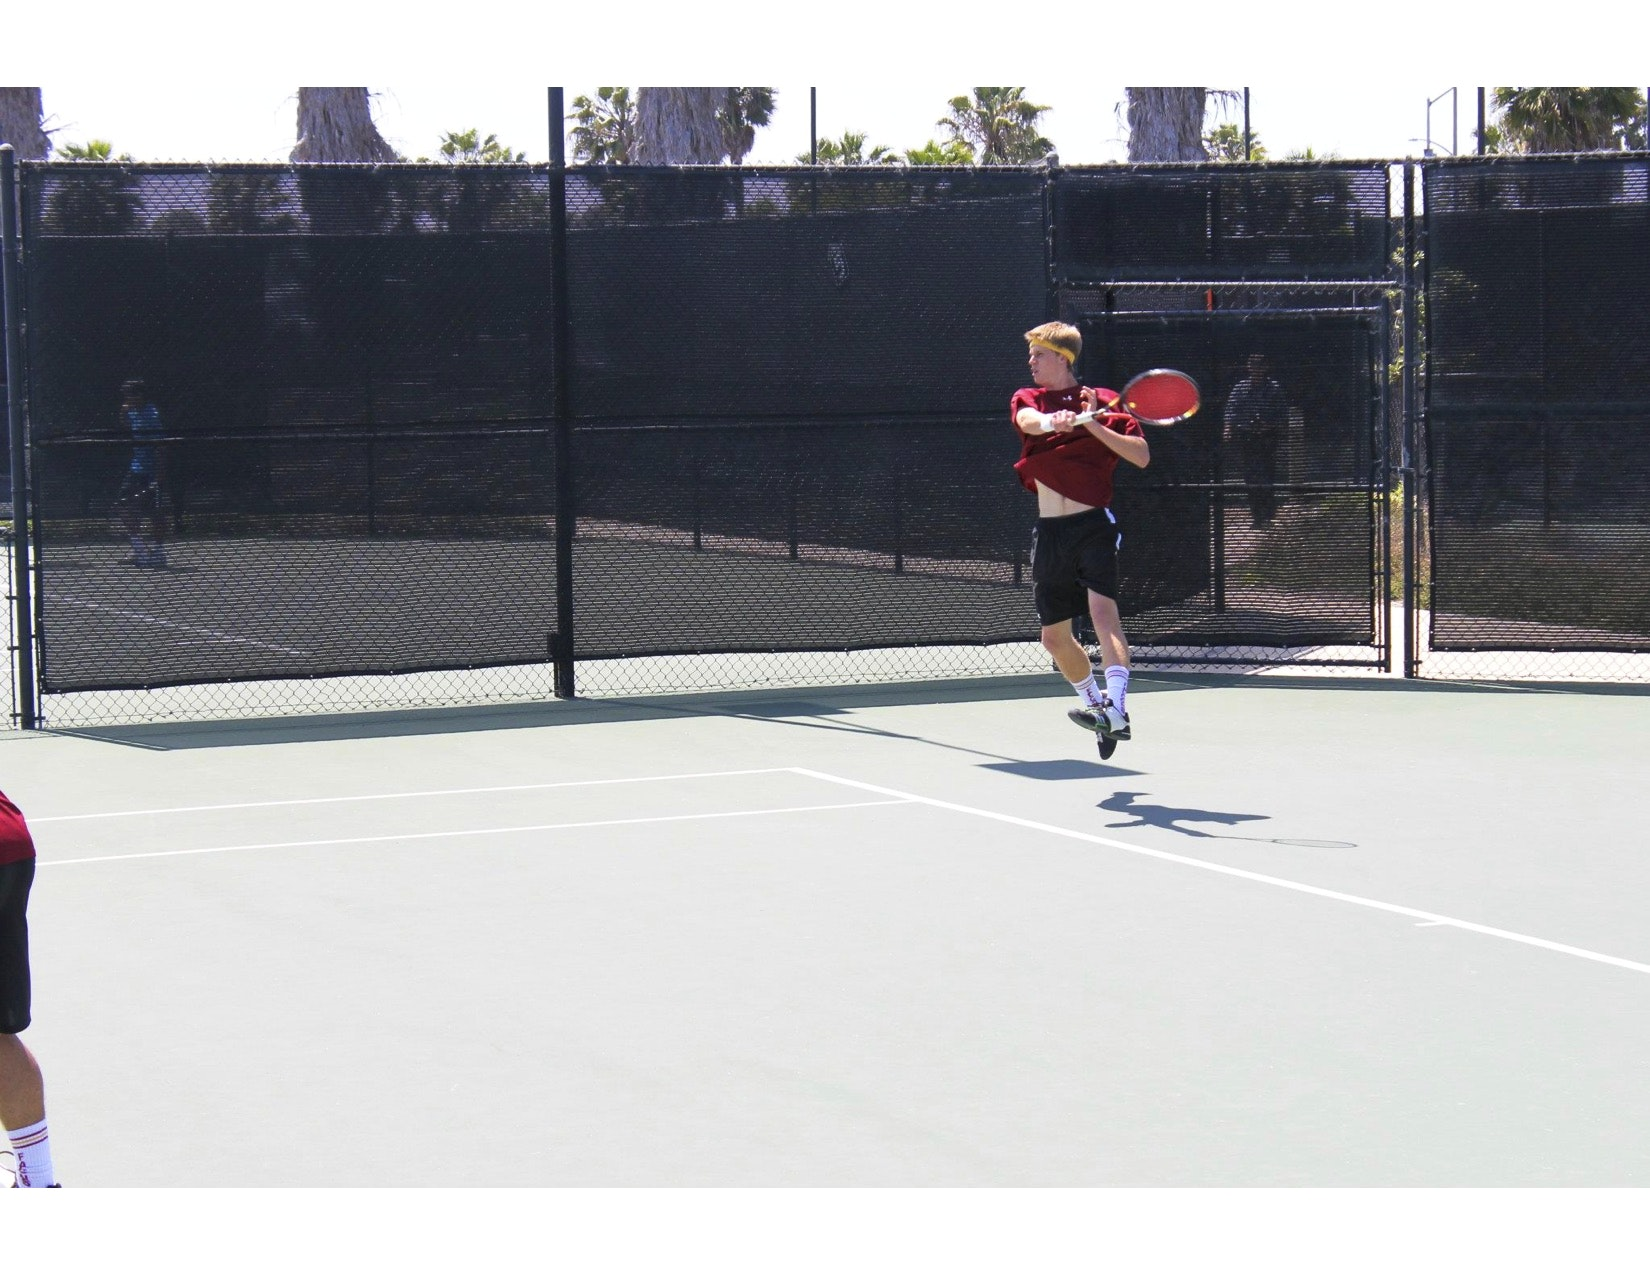 Connor E. teaches tennis lessons in Napa, CA